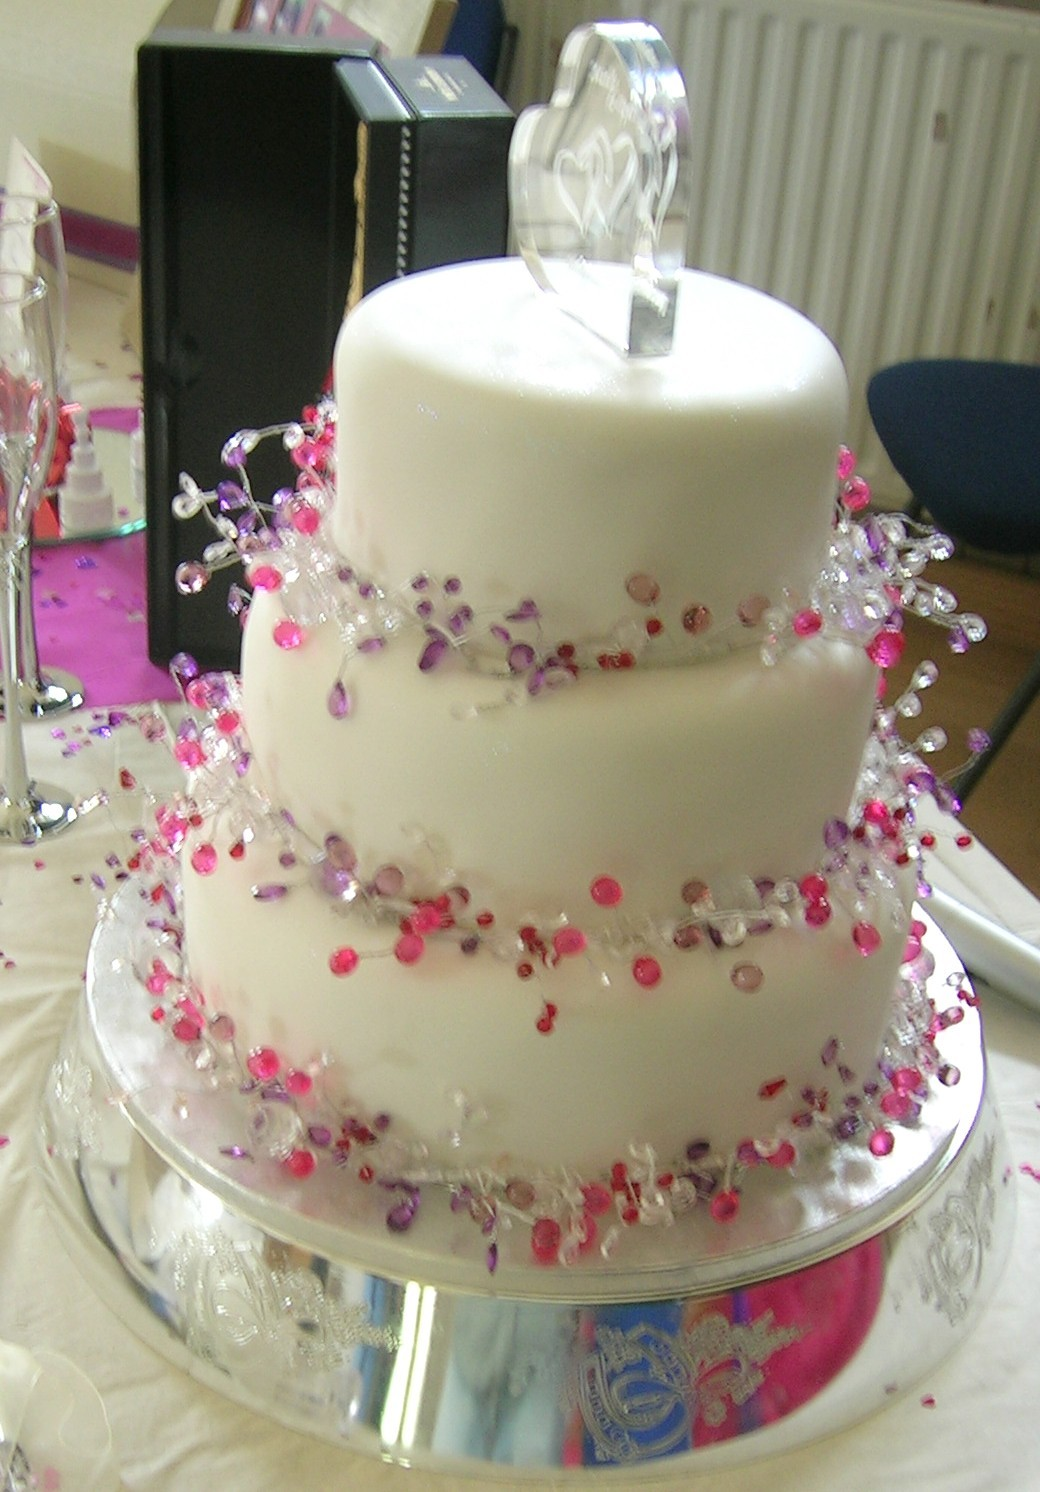 Cake Decorating Homemade : Wedding Pictures Wedding Photos: Wedding Cake Decorating ...